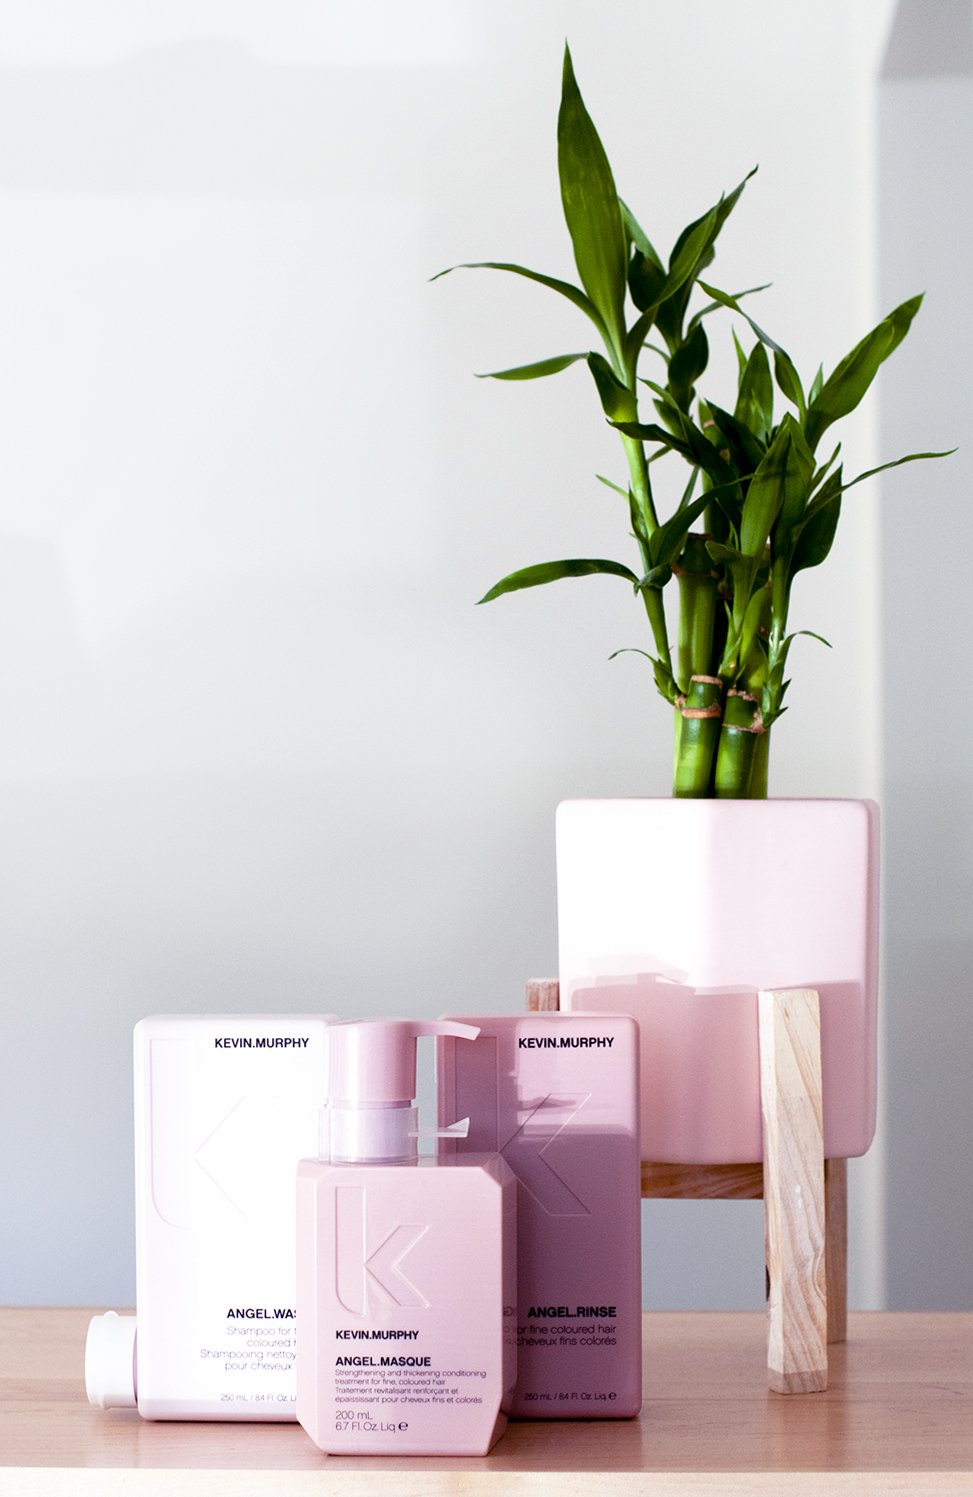 An assortment of pink KEvin Murphy products next to a green plant.